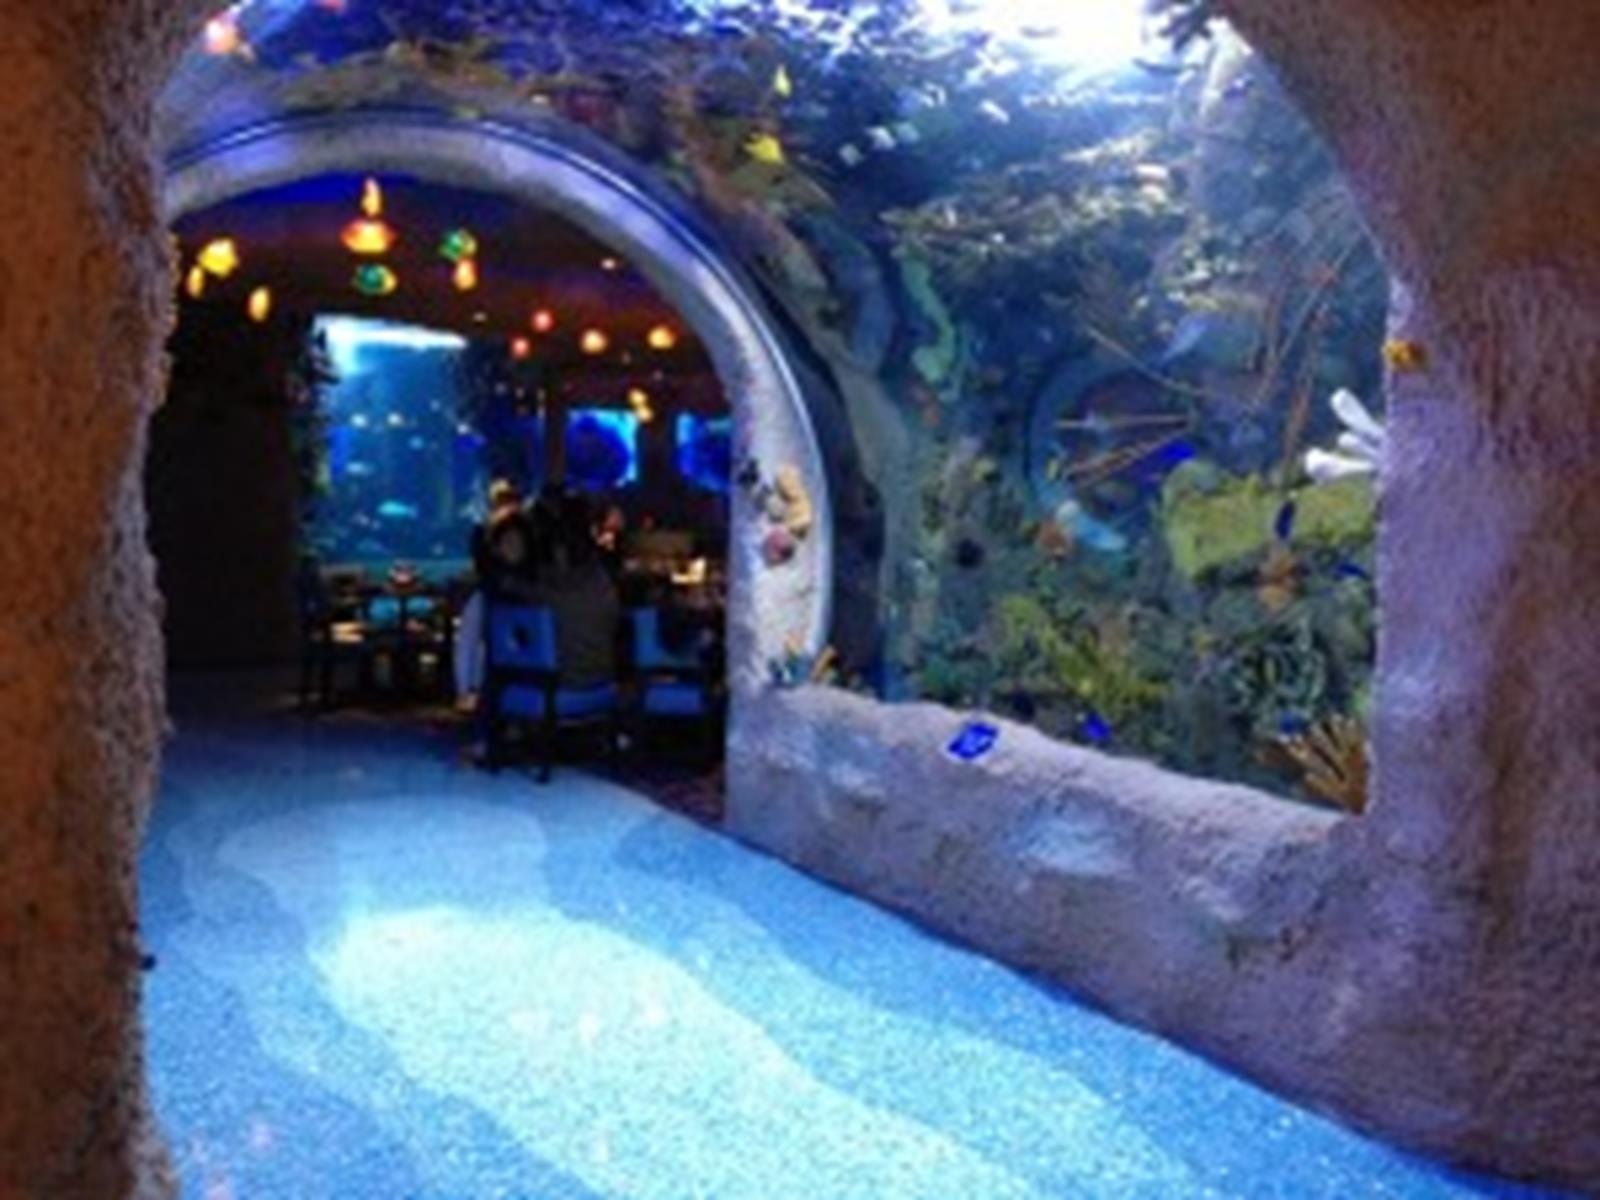 Entrance to Aquarium Restaurant in Nashville, Tennessee